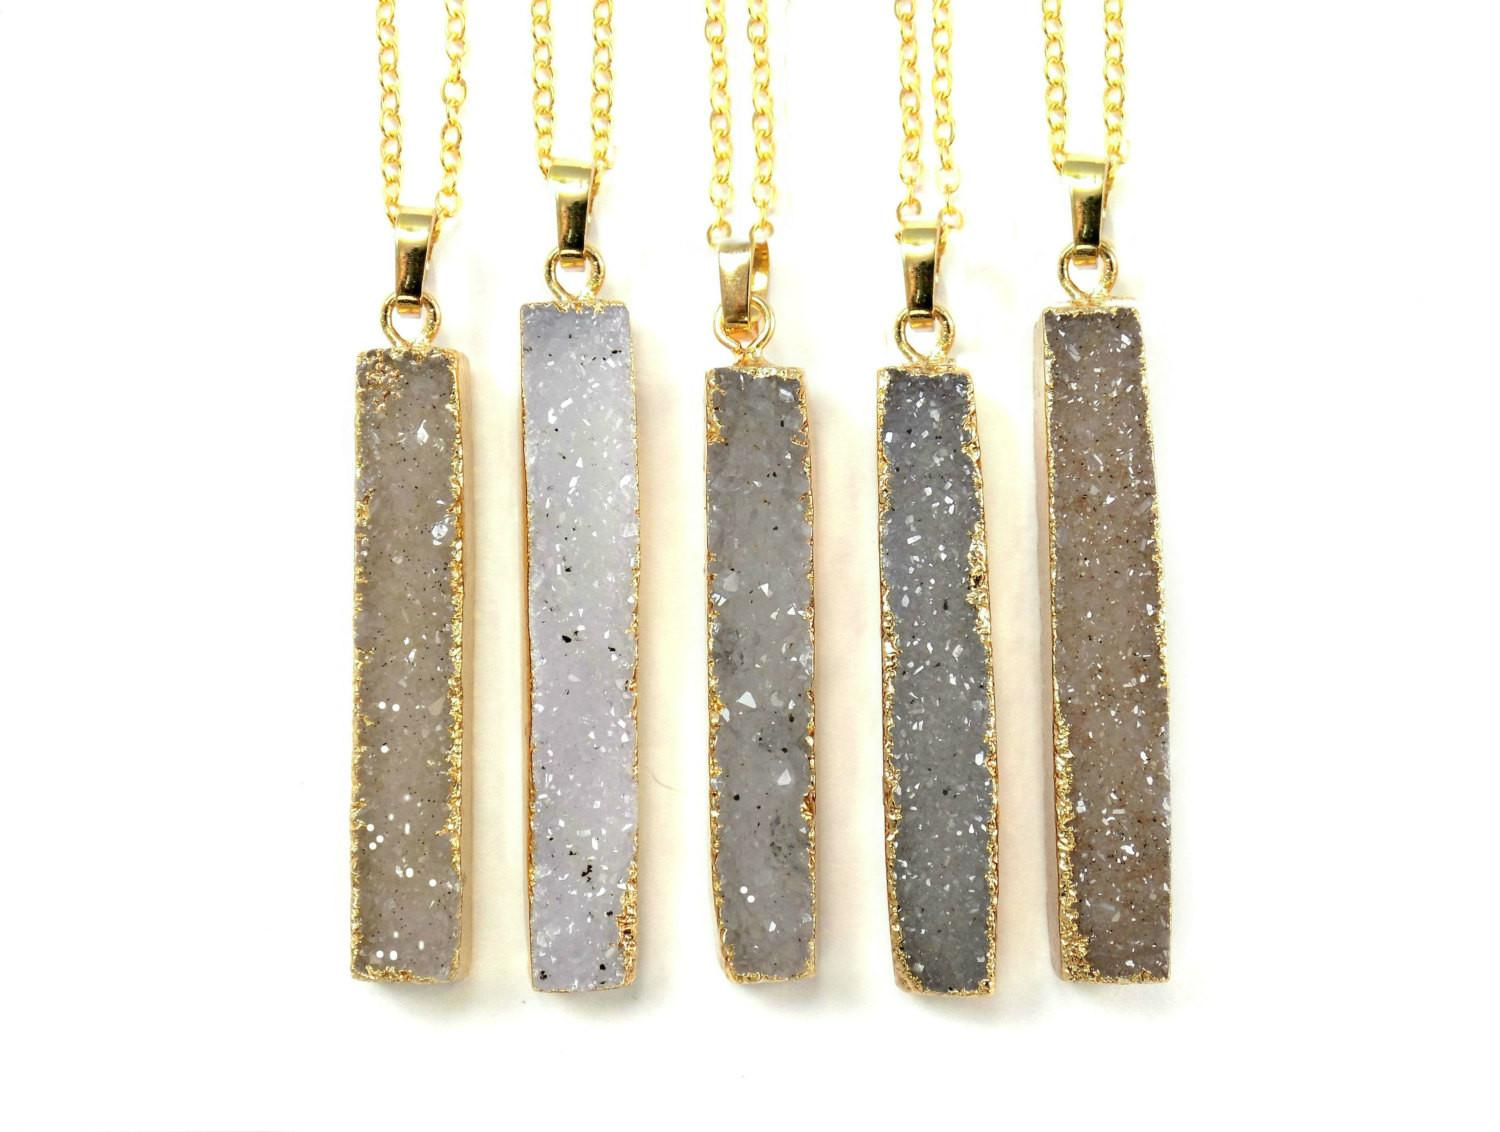 Druzy Necklace Modern Minimal Crystal Pendant Bar